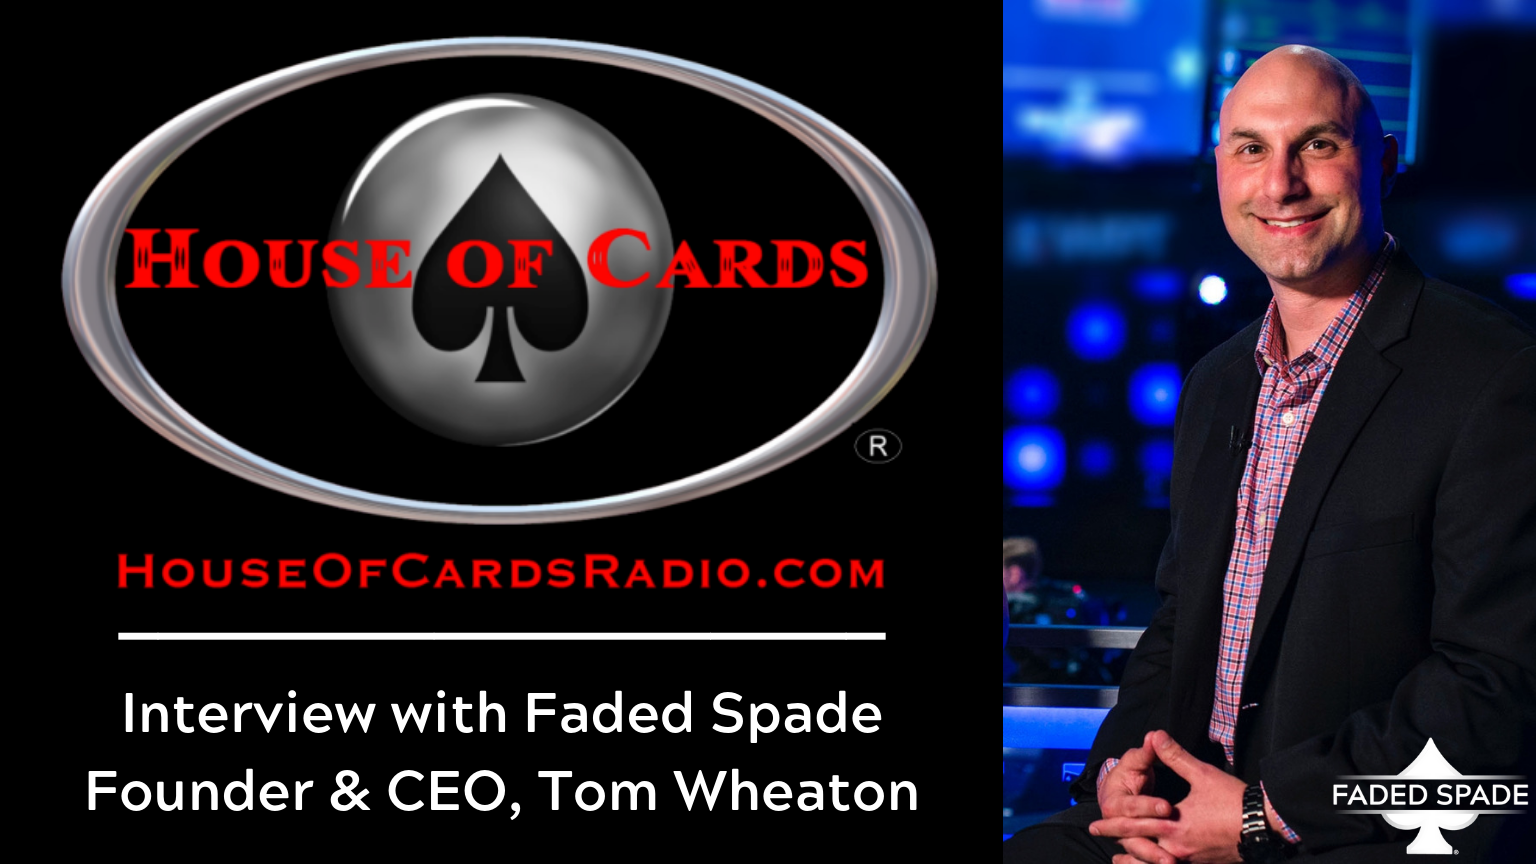 Faded Spade poker playing cards founder and ceo Tom Wheaton interview on house of cards radio podcast